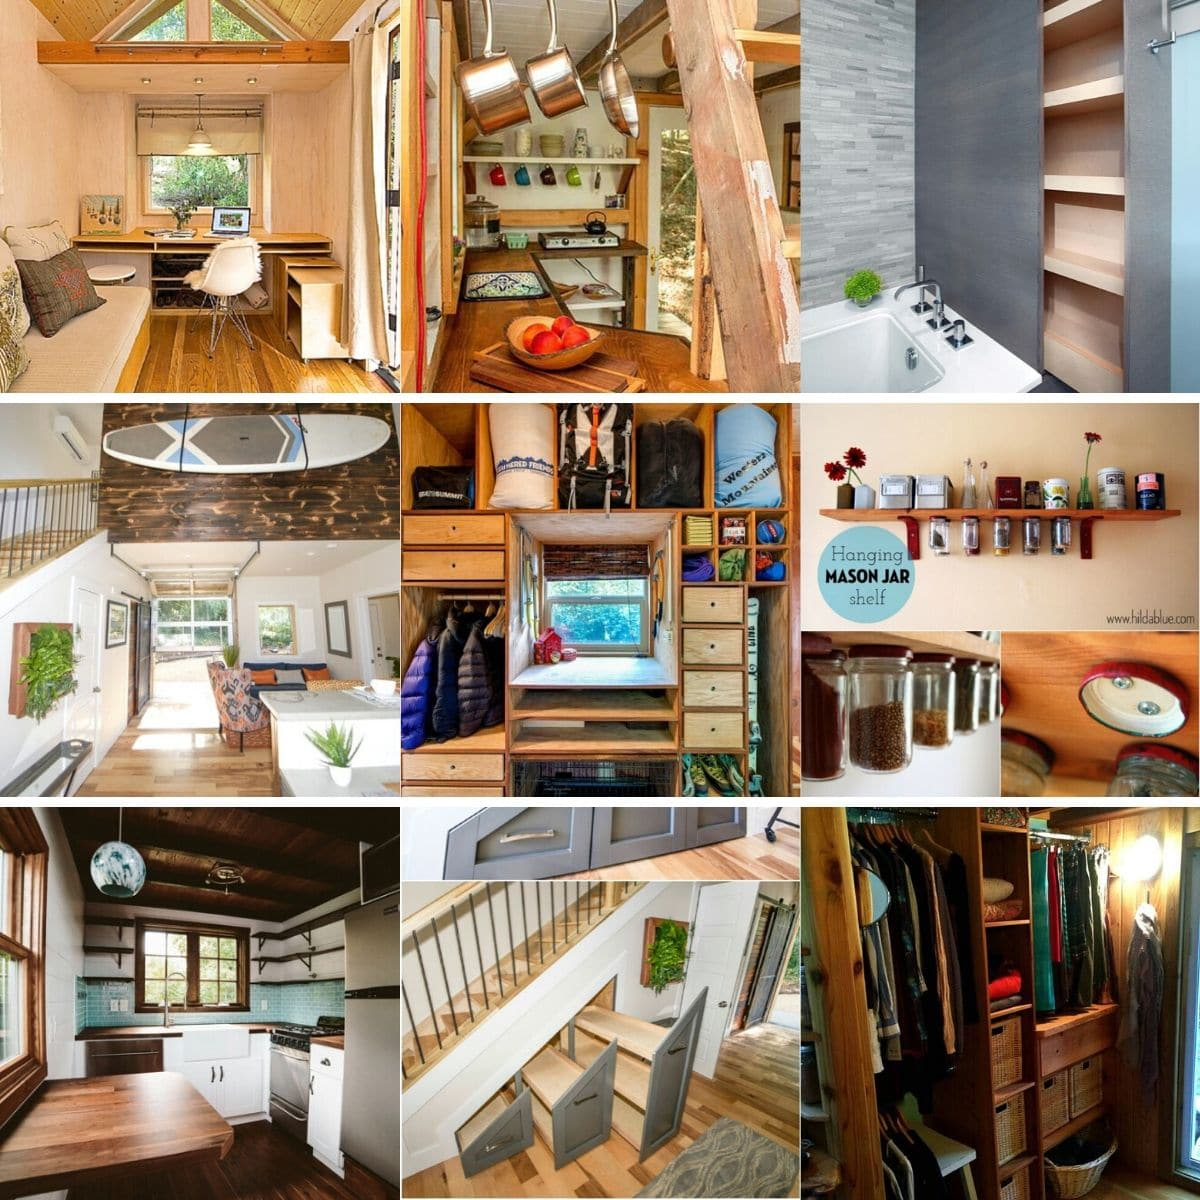 40 Tiny House Storage and Organizing Ideas for the Entire Home - Tiny Houses